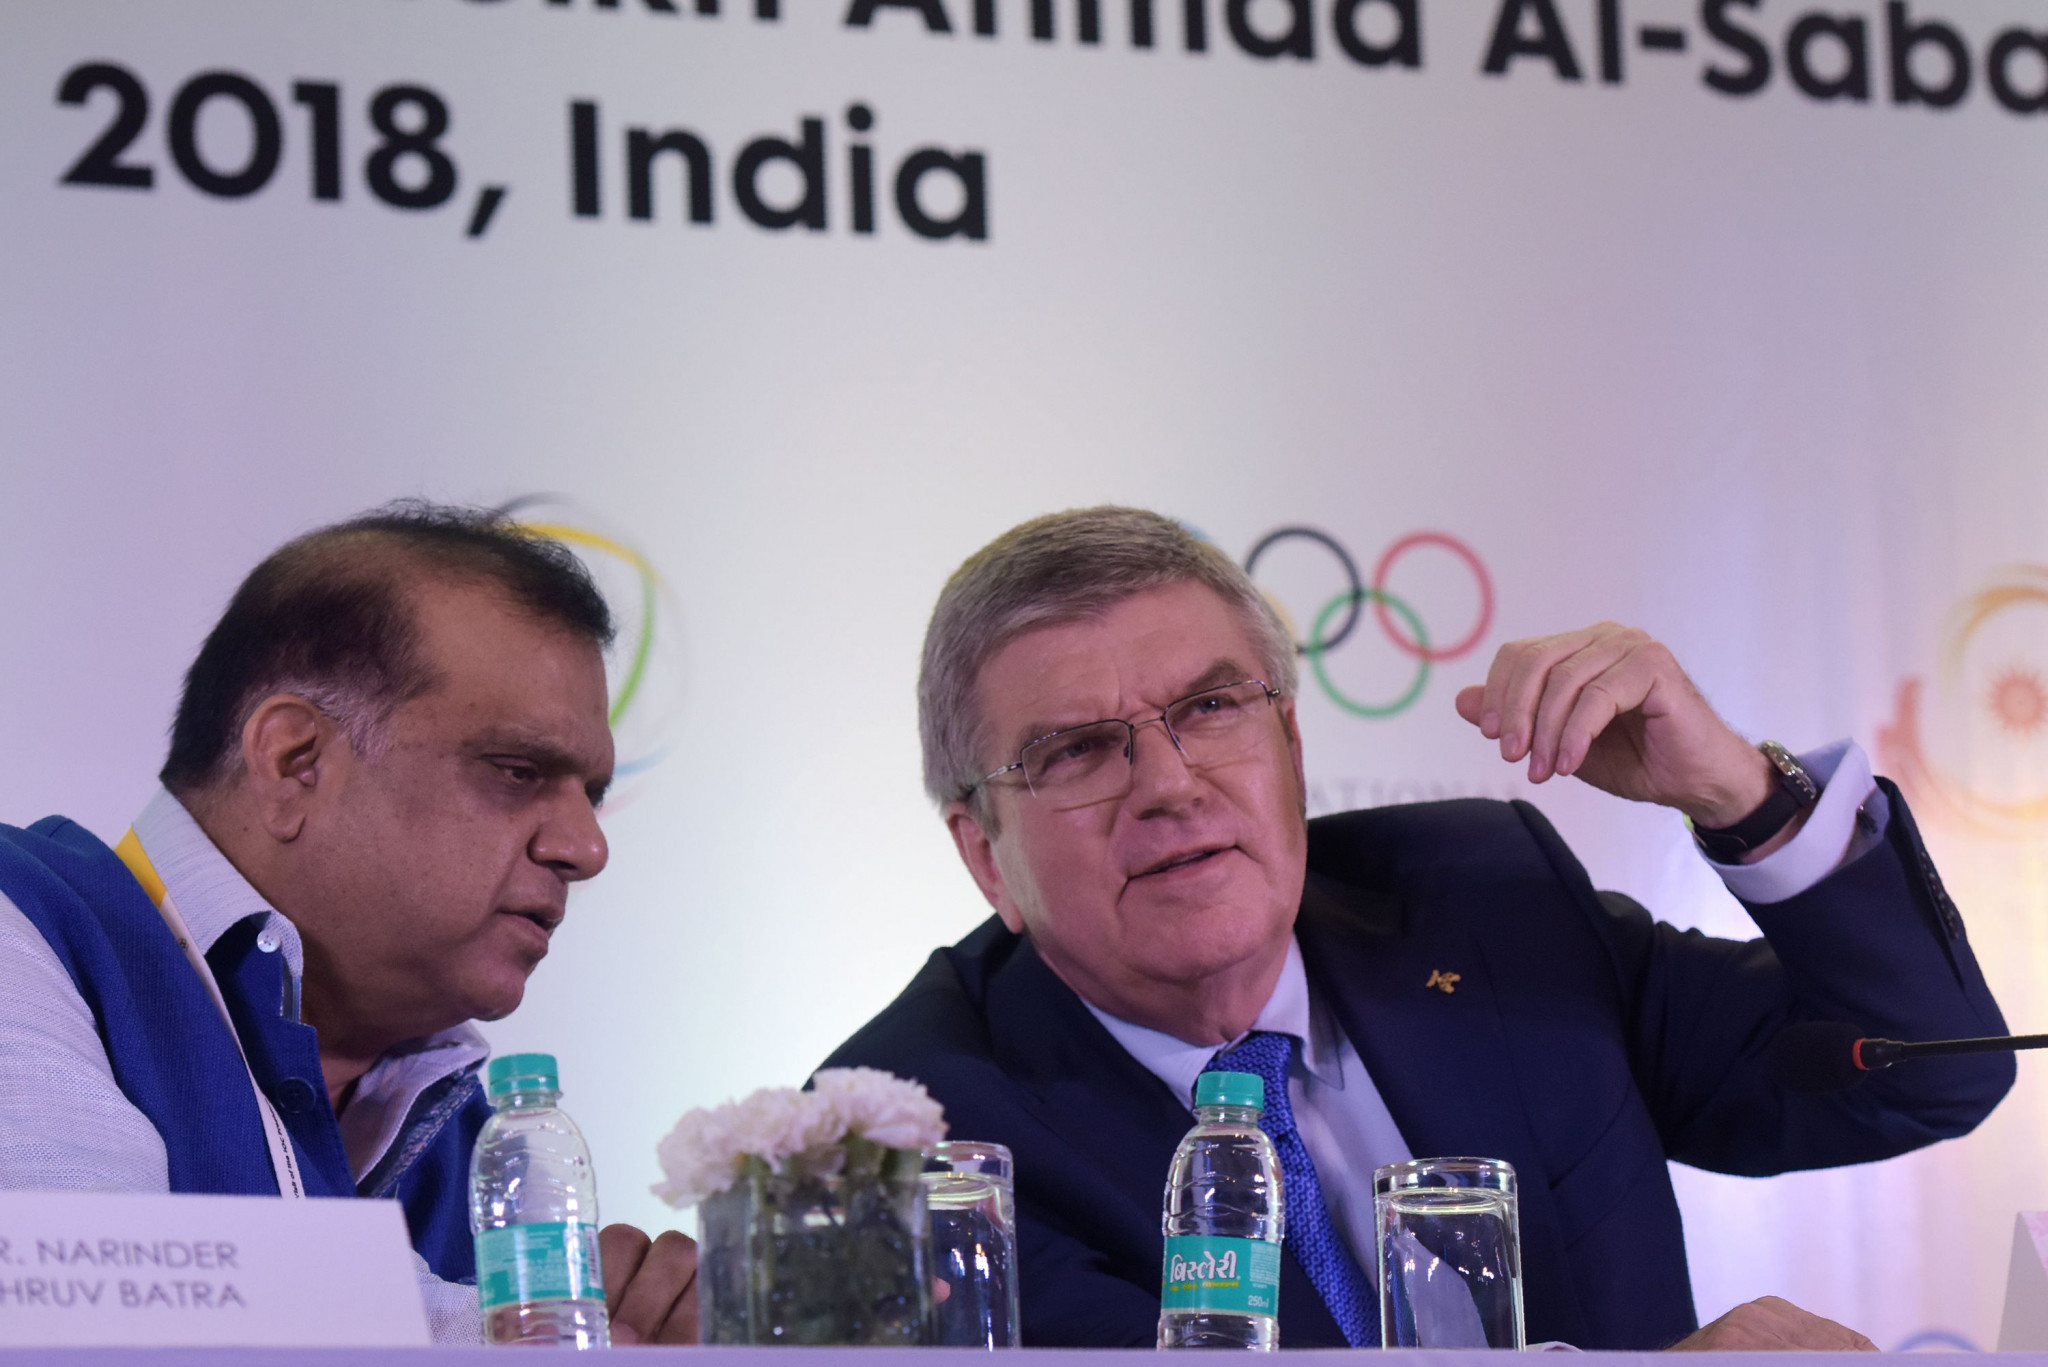 IOA President Narinder Batra has confirmed the country will bid for the 2032 Olympic Games ©Getty Images